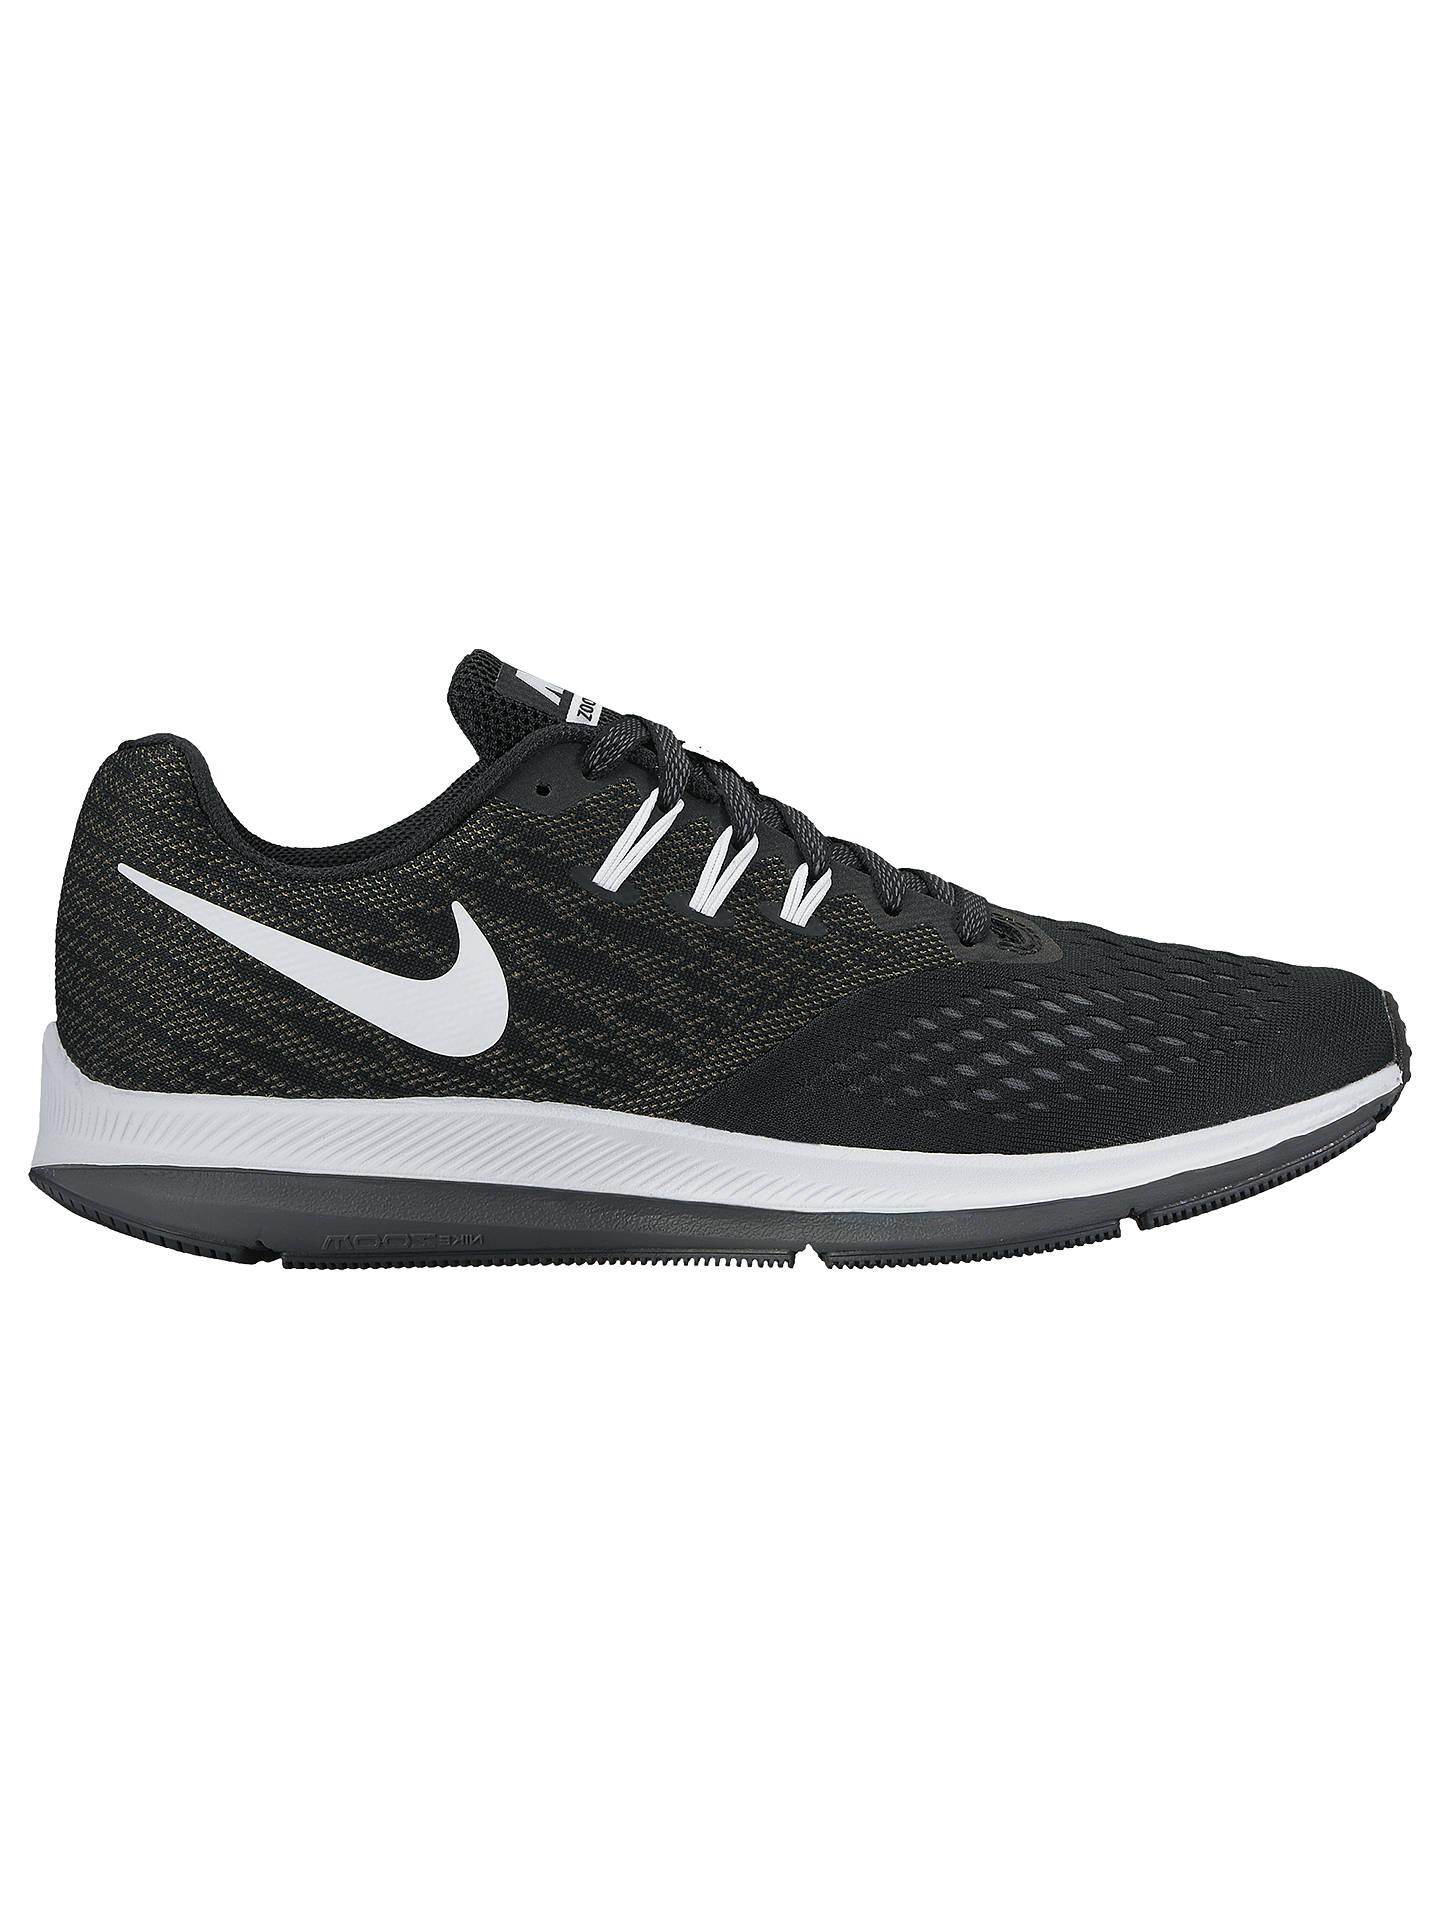 77886c1e702 Nike Air Zoom Winflo 4 Men s Running Shoes at John Lewis   Partners